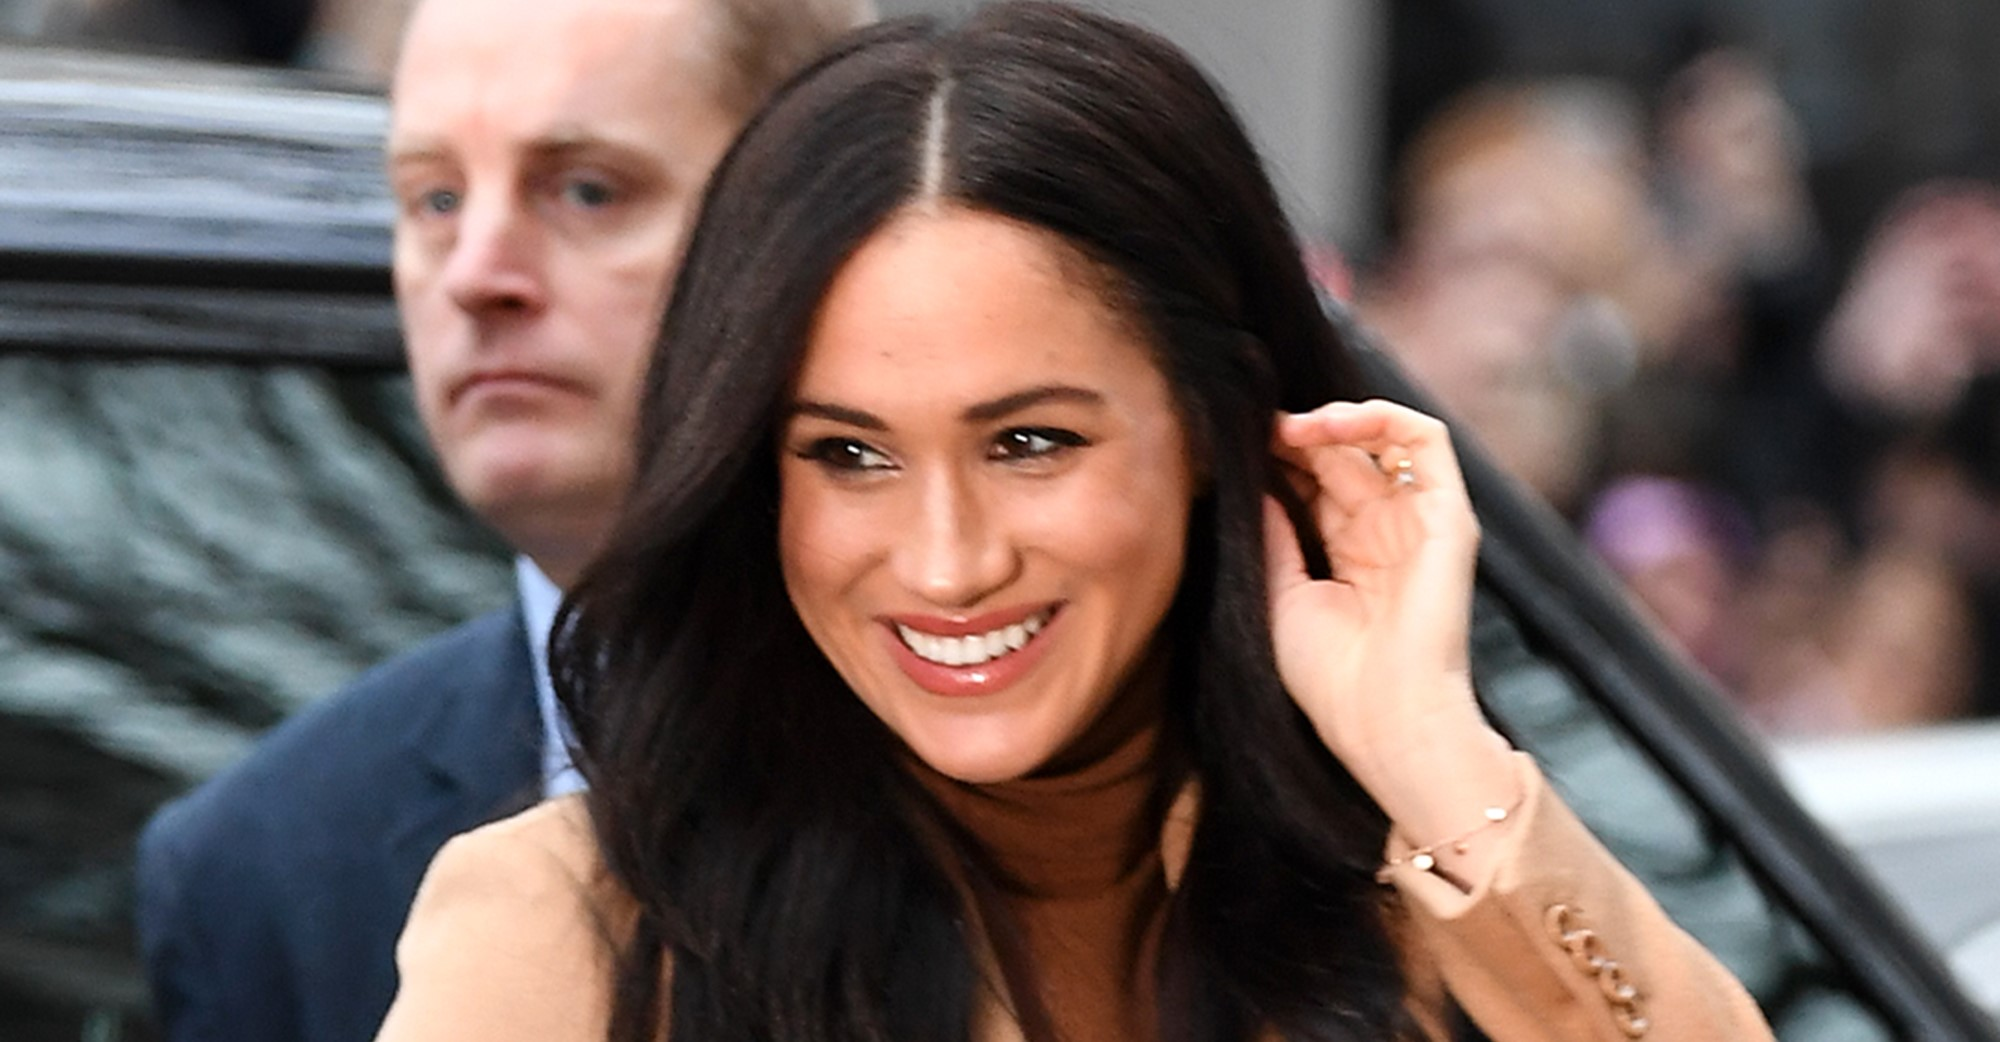 Royal police 'face security heartache as Meghan flies back to UK without Archie'